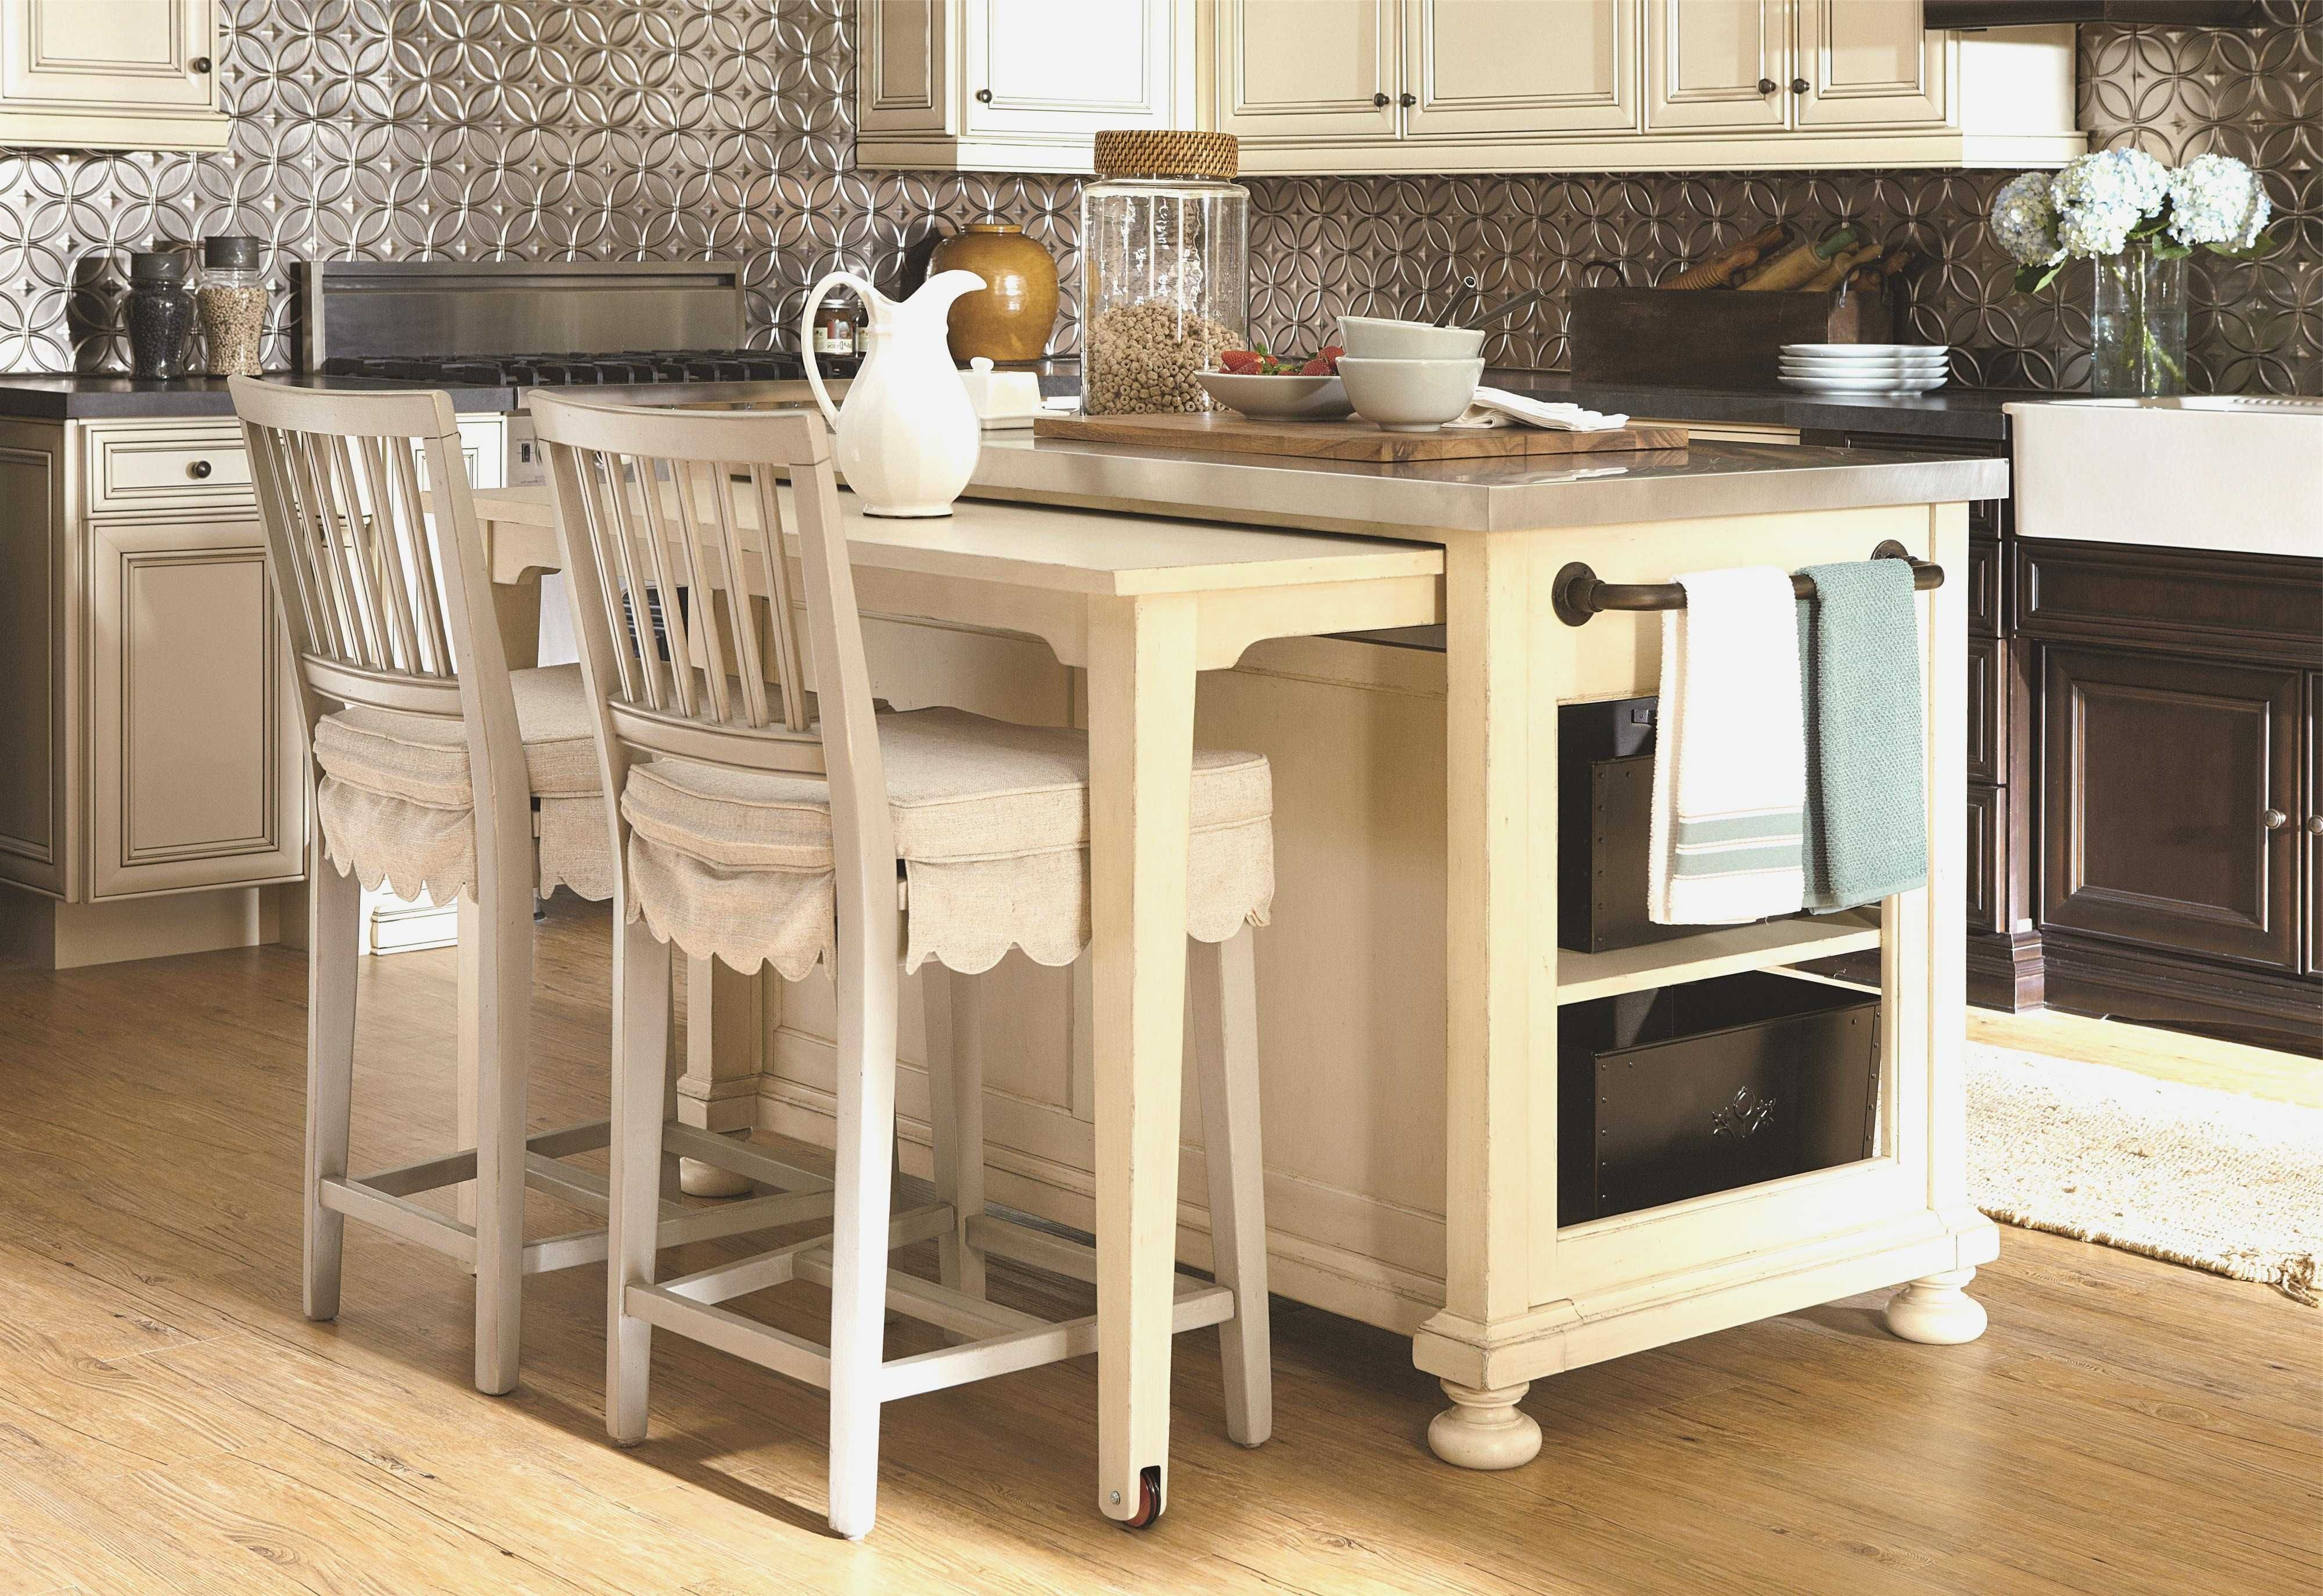 Stunning Kitchen Island With Pull Out Table Inspirations Also Pallet Projects Paula Deen Ideas Grills Breakfast Bar Crosley Lu Kitchen Design Kitchen Island With Seating Stools For Kitchen Island